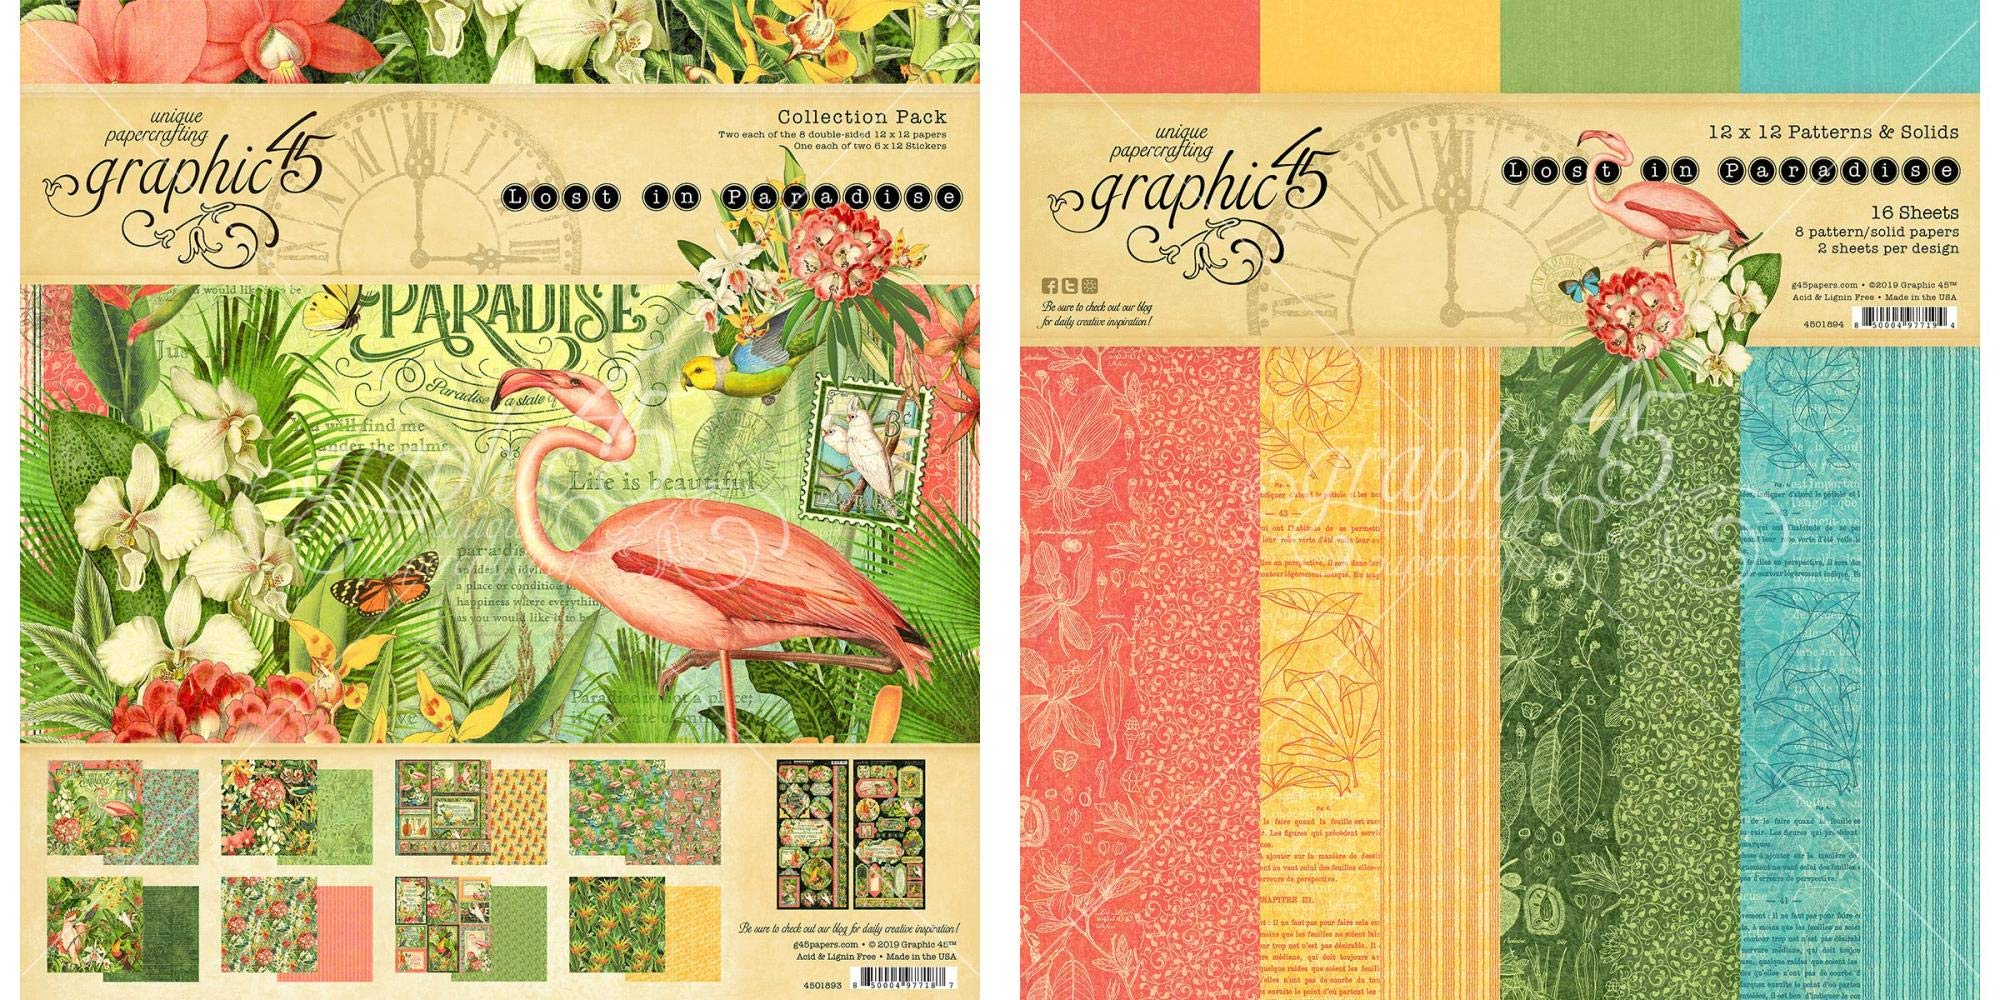 Graphic 45 - Lost in Paradise Collection Pack and Patterns & Solids Paper Pad - 12 x 12 Inch Decorative Papers - 2 Items